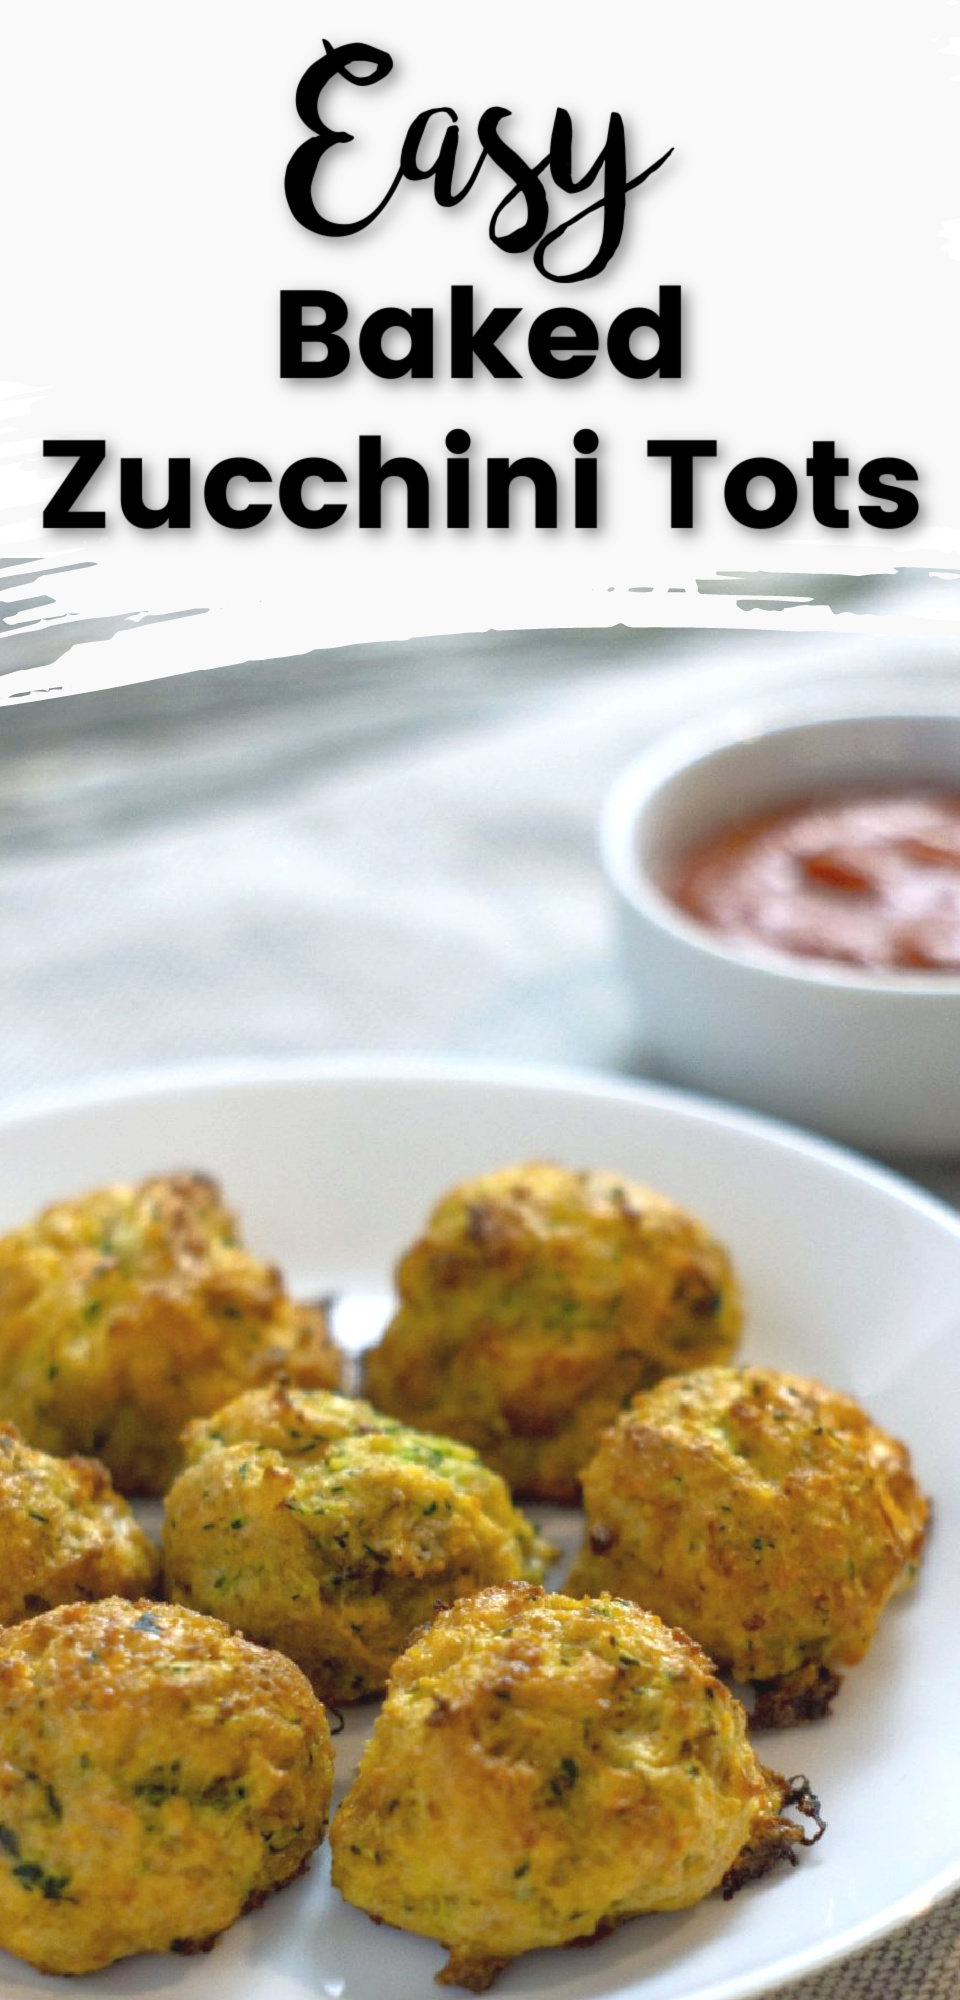 Zucchini Tots are a delicious alternative to Tater Tots and a great way to get your family to eat their veggies! These bite-sized tots are made of zucchini and cheese and make an amazing side dish! via @simplysidedishes89